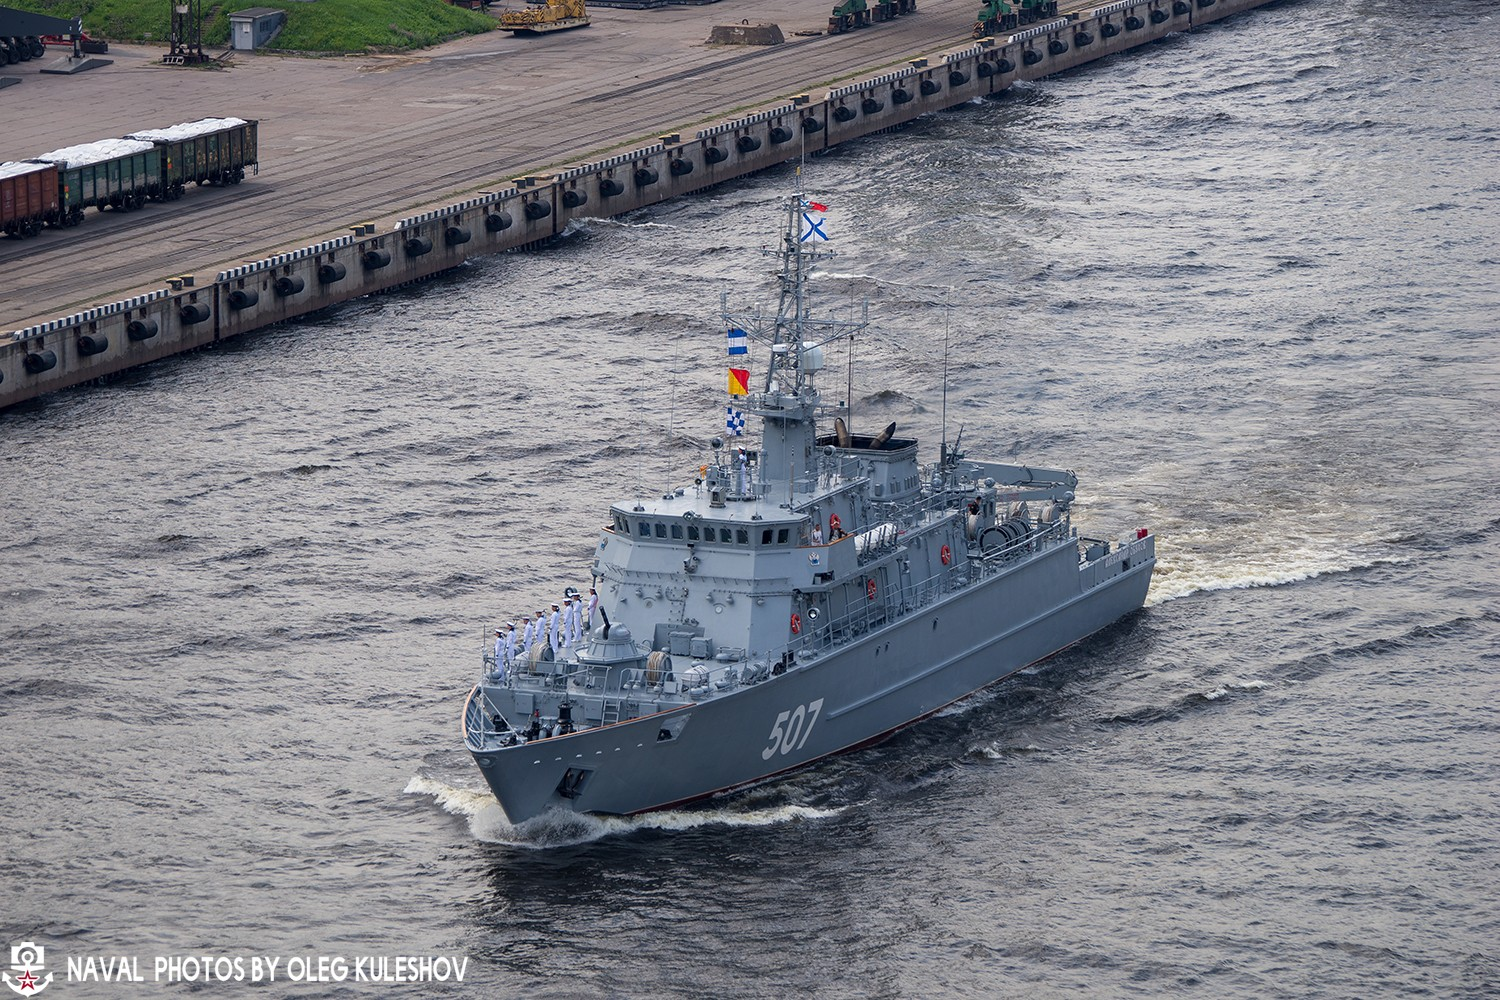 Minesweeper Ivan Antonov went to the factory running tests 71